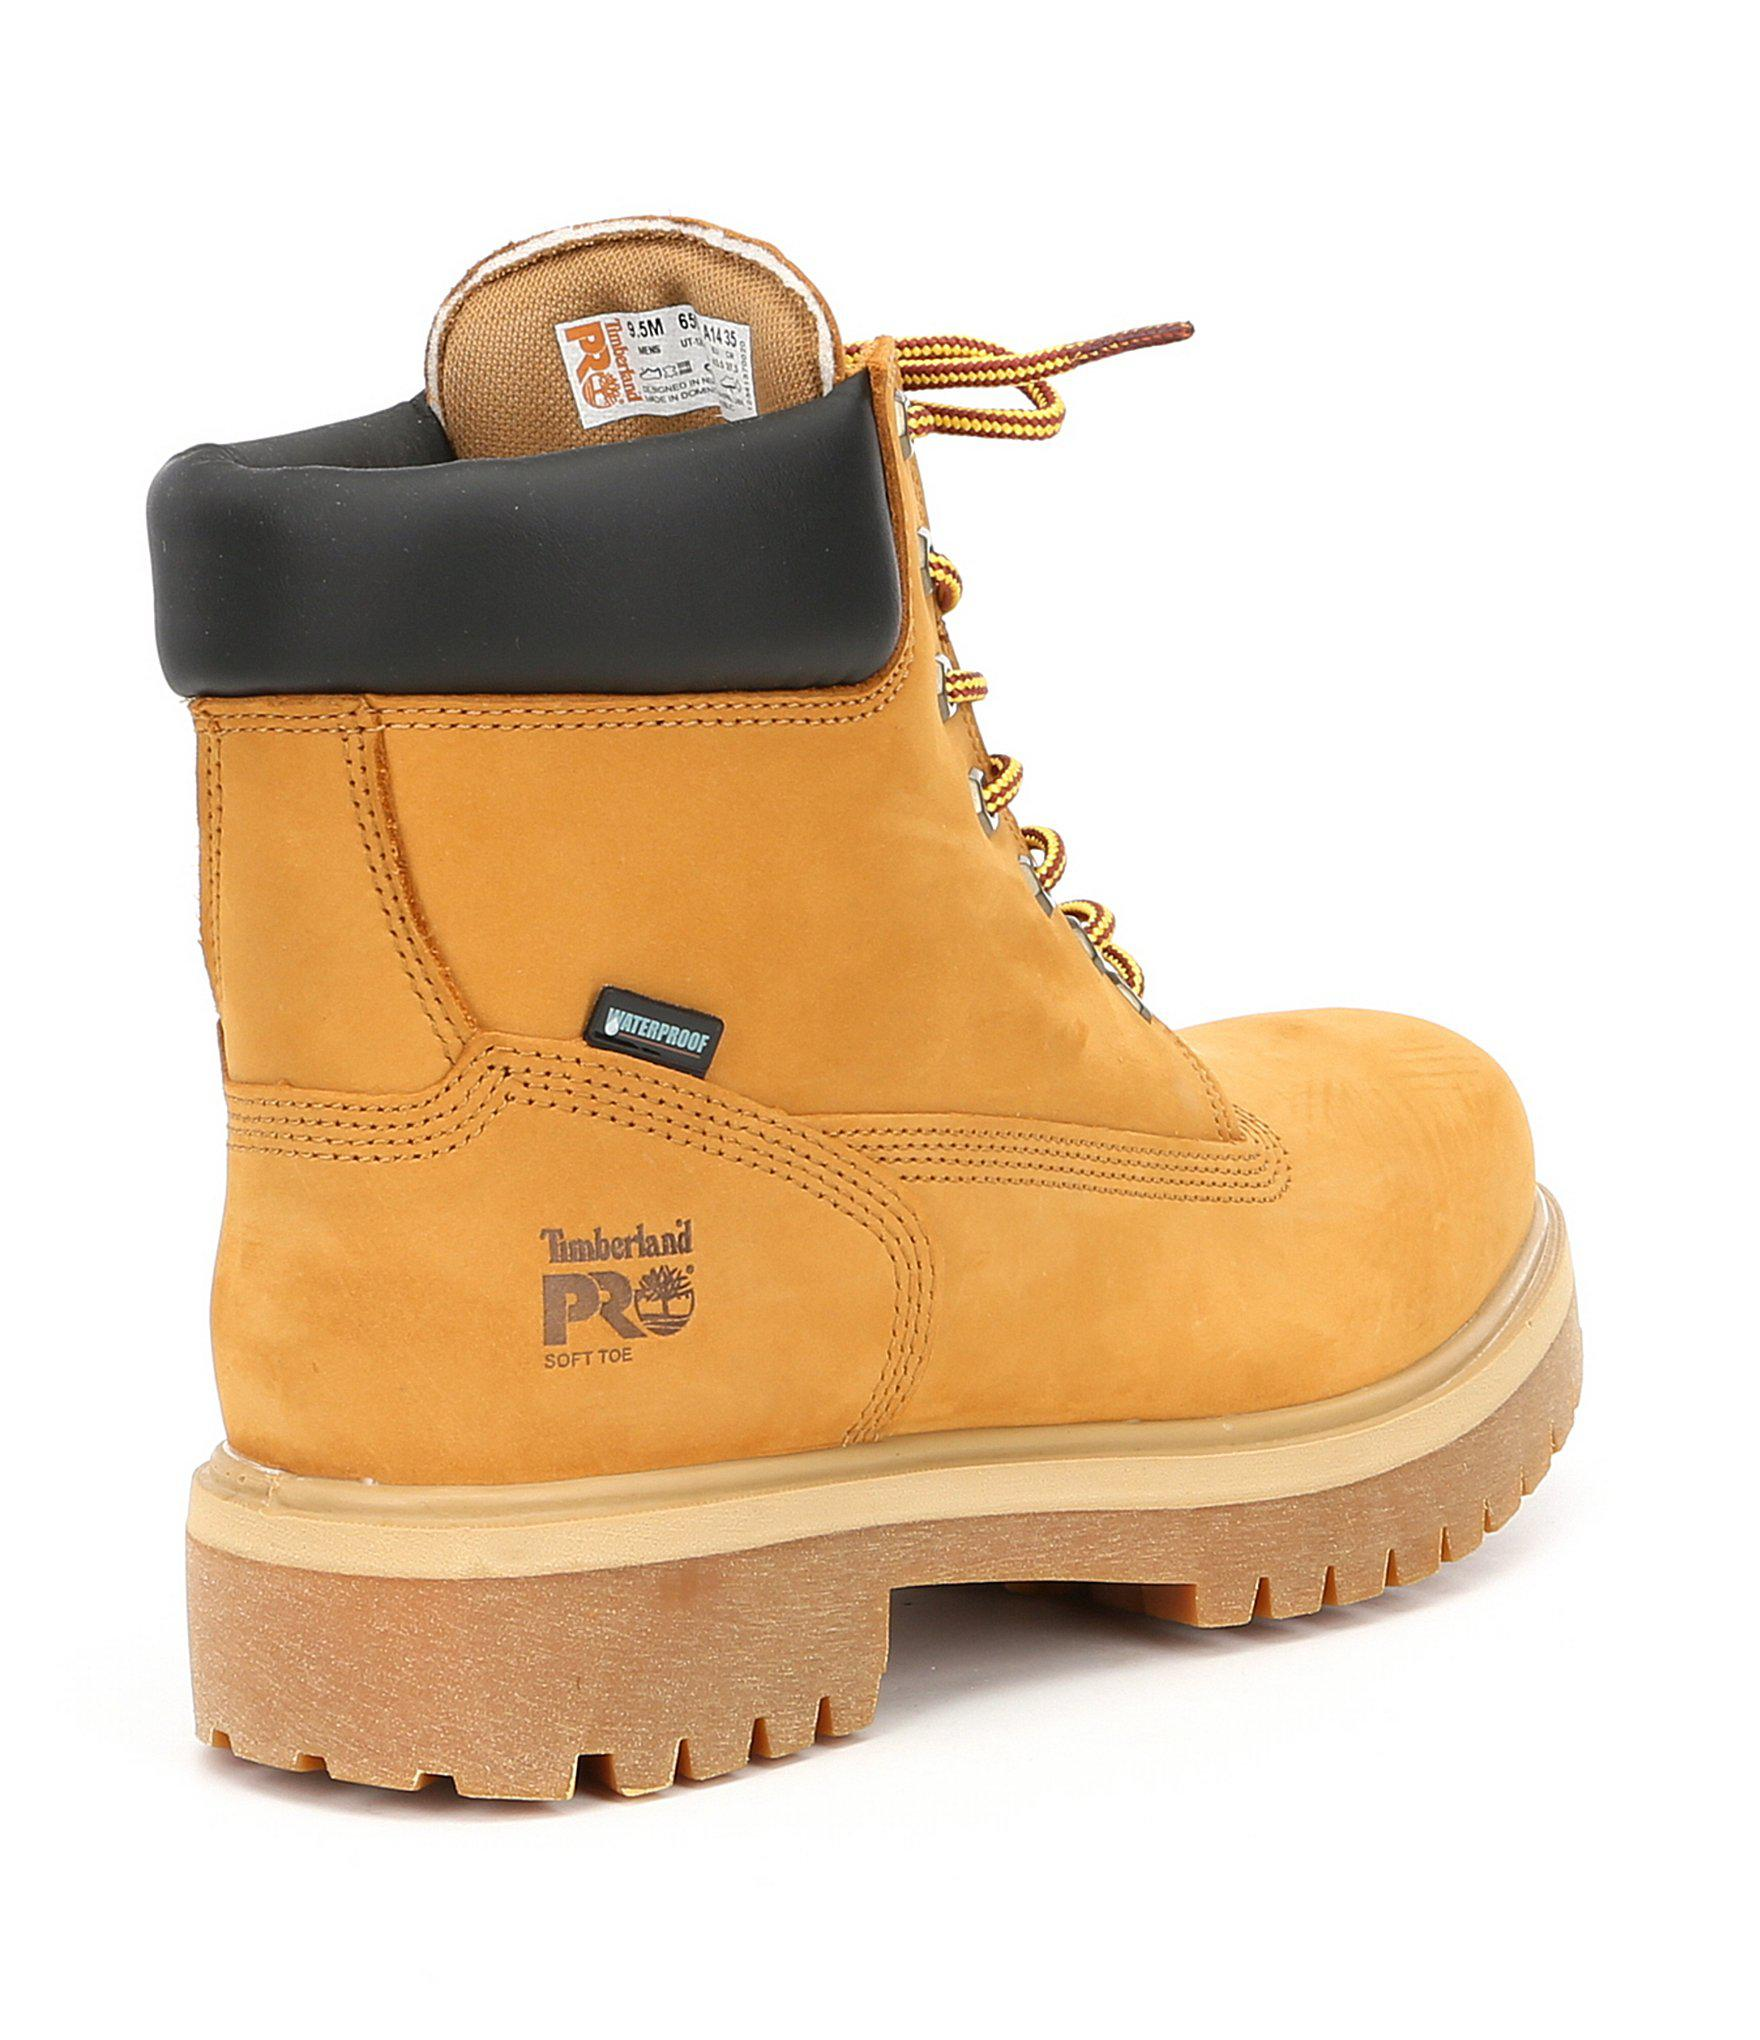 1facbe38 Tap to visit site. Timberland - Yellow Pro Men's Direct Attach 6